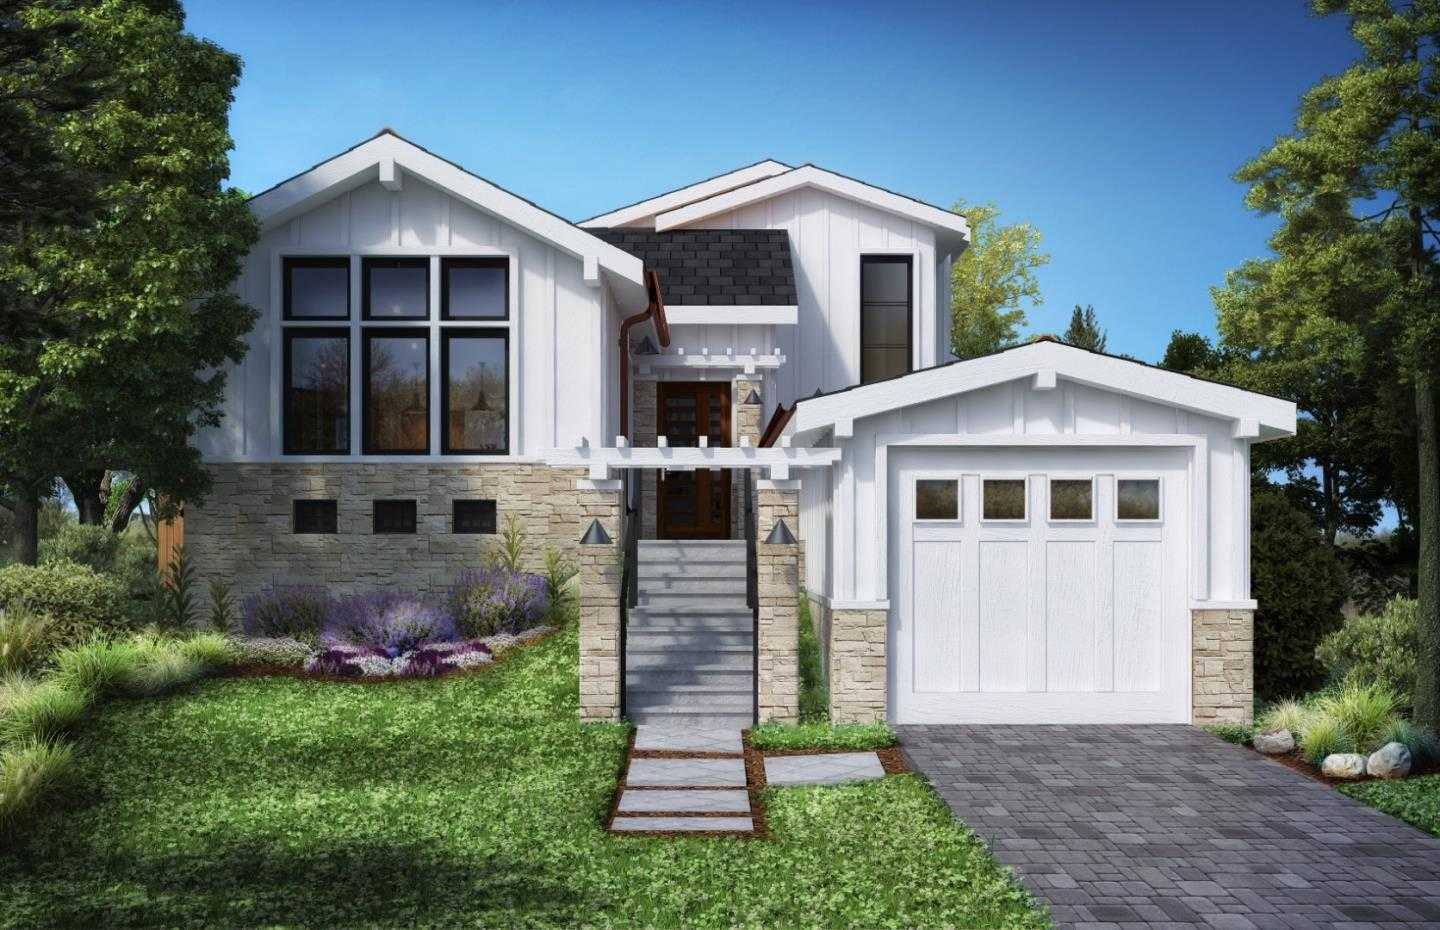 $3,295,000 - 3Br/3Ba -  for Sale in Carmel